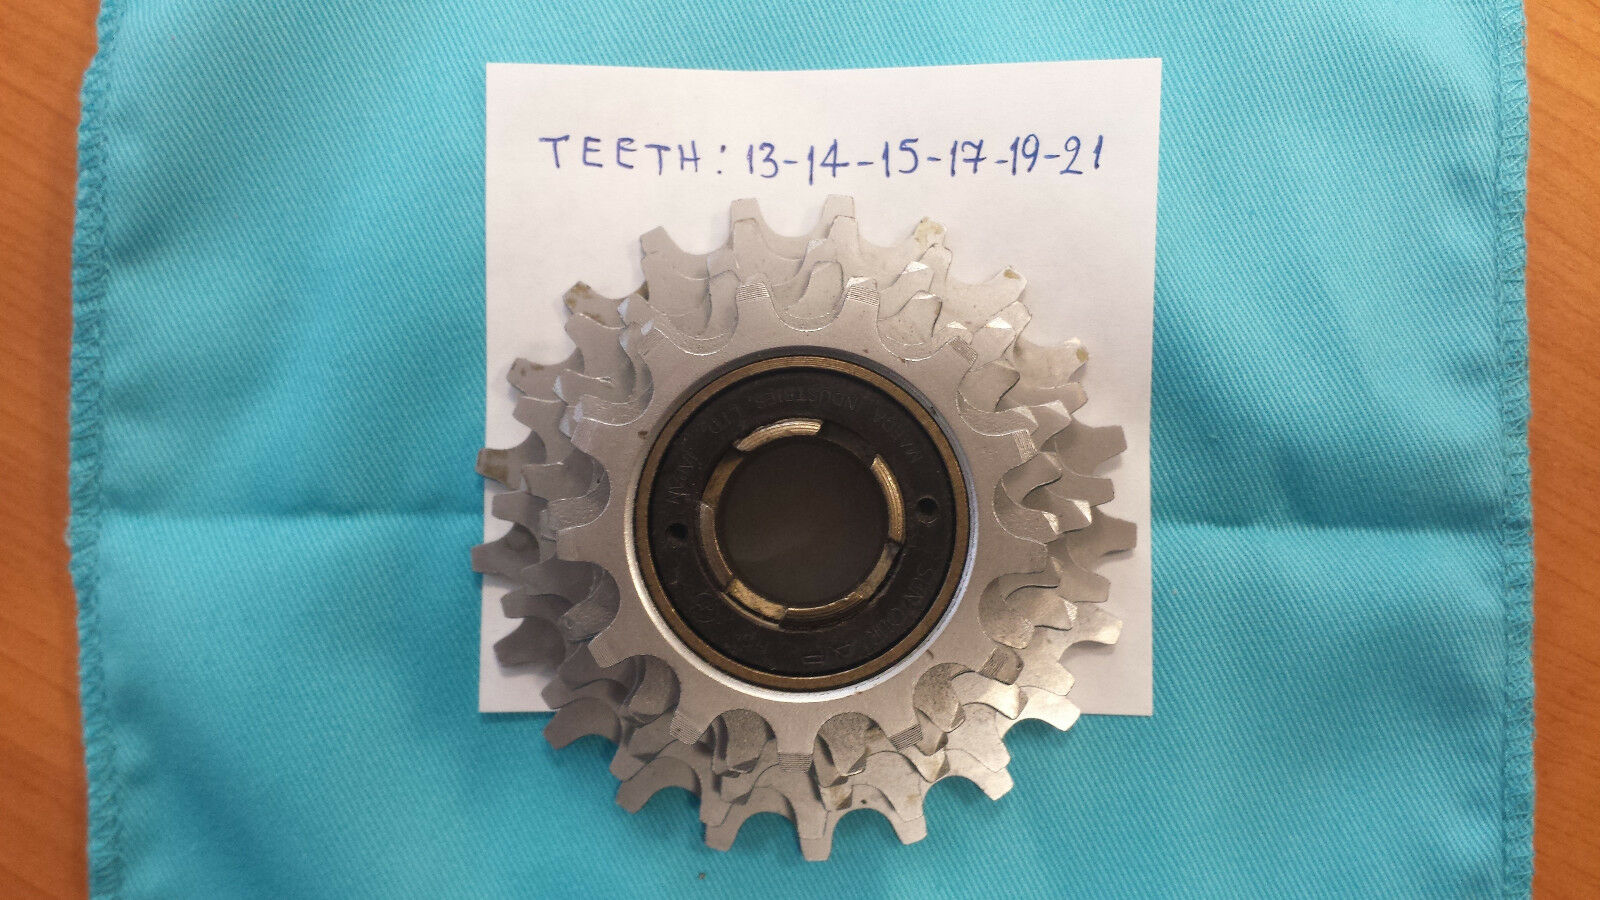 NOS Suntour 6 speed freewheel english thread 13-21 Ratio made in Japan New